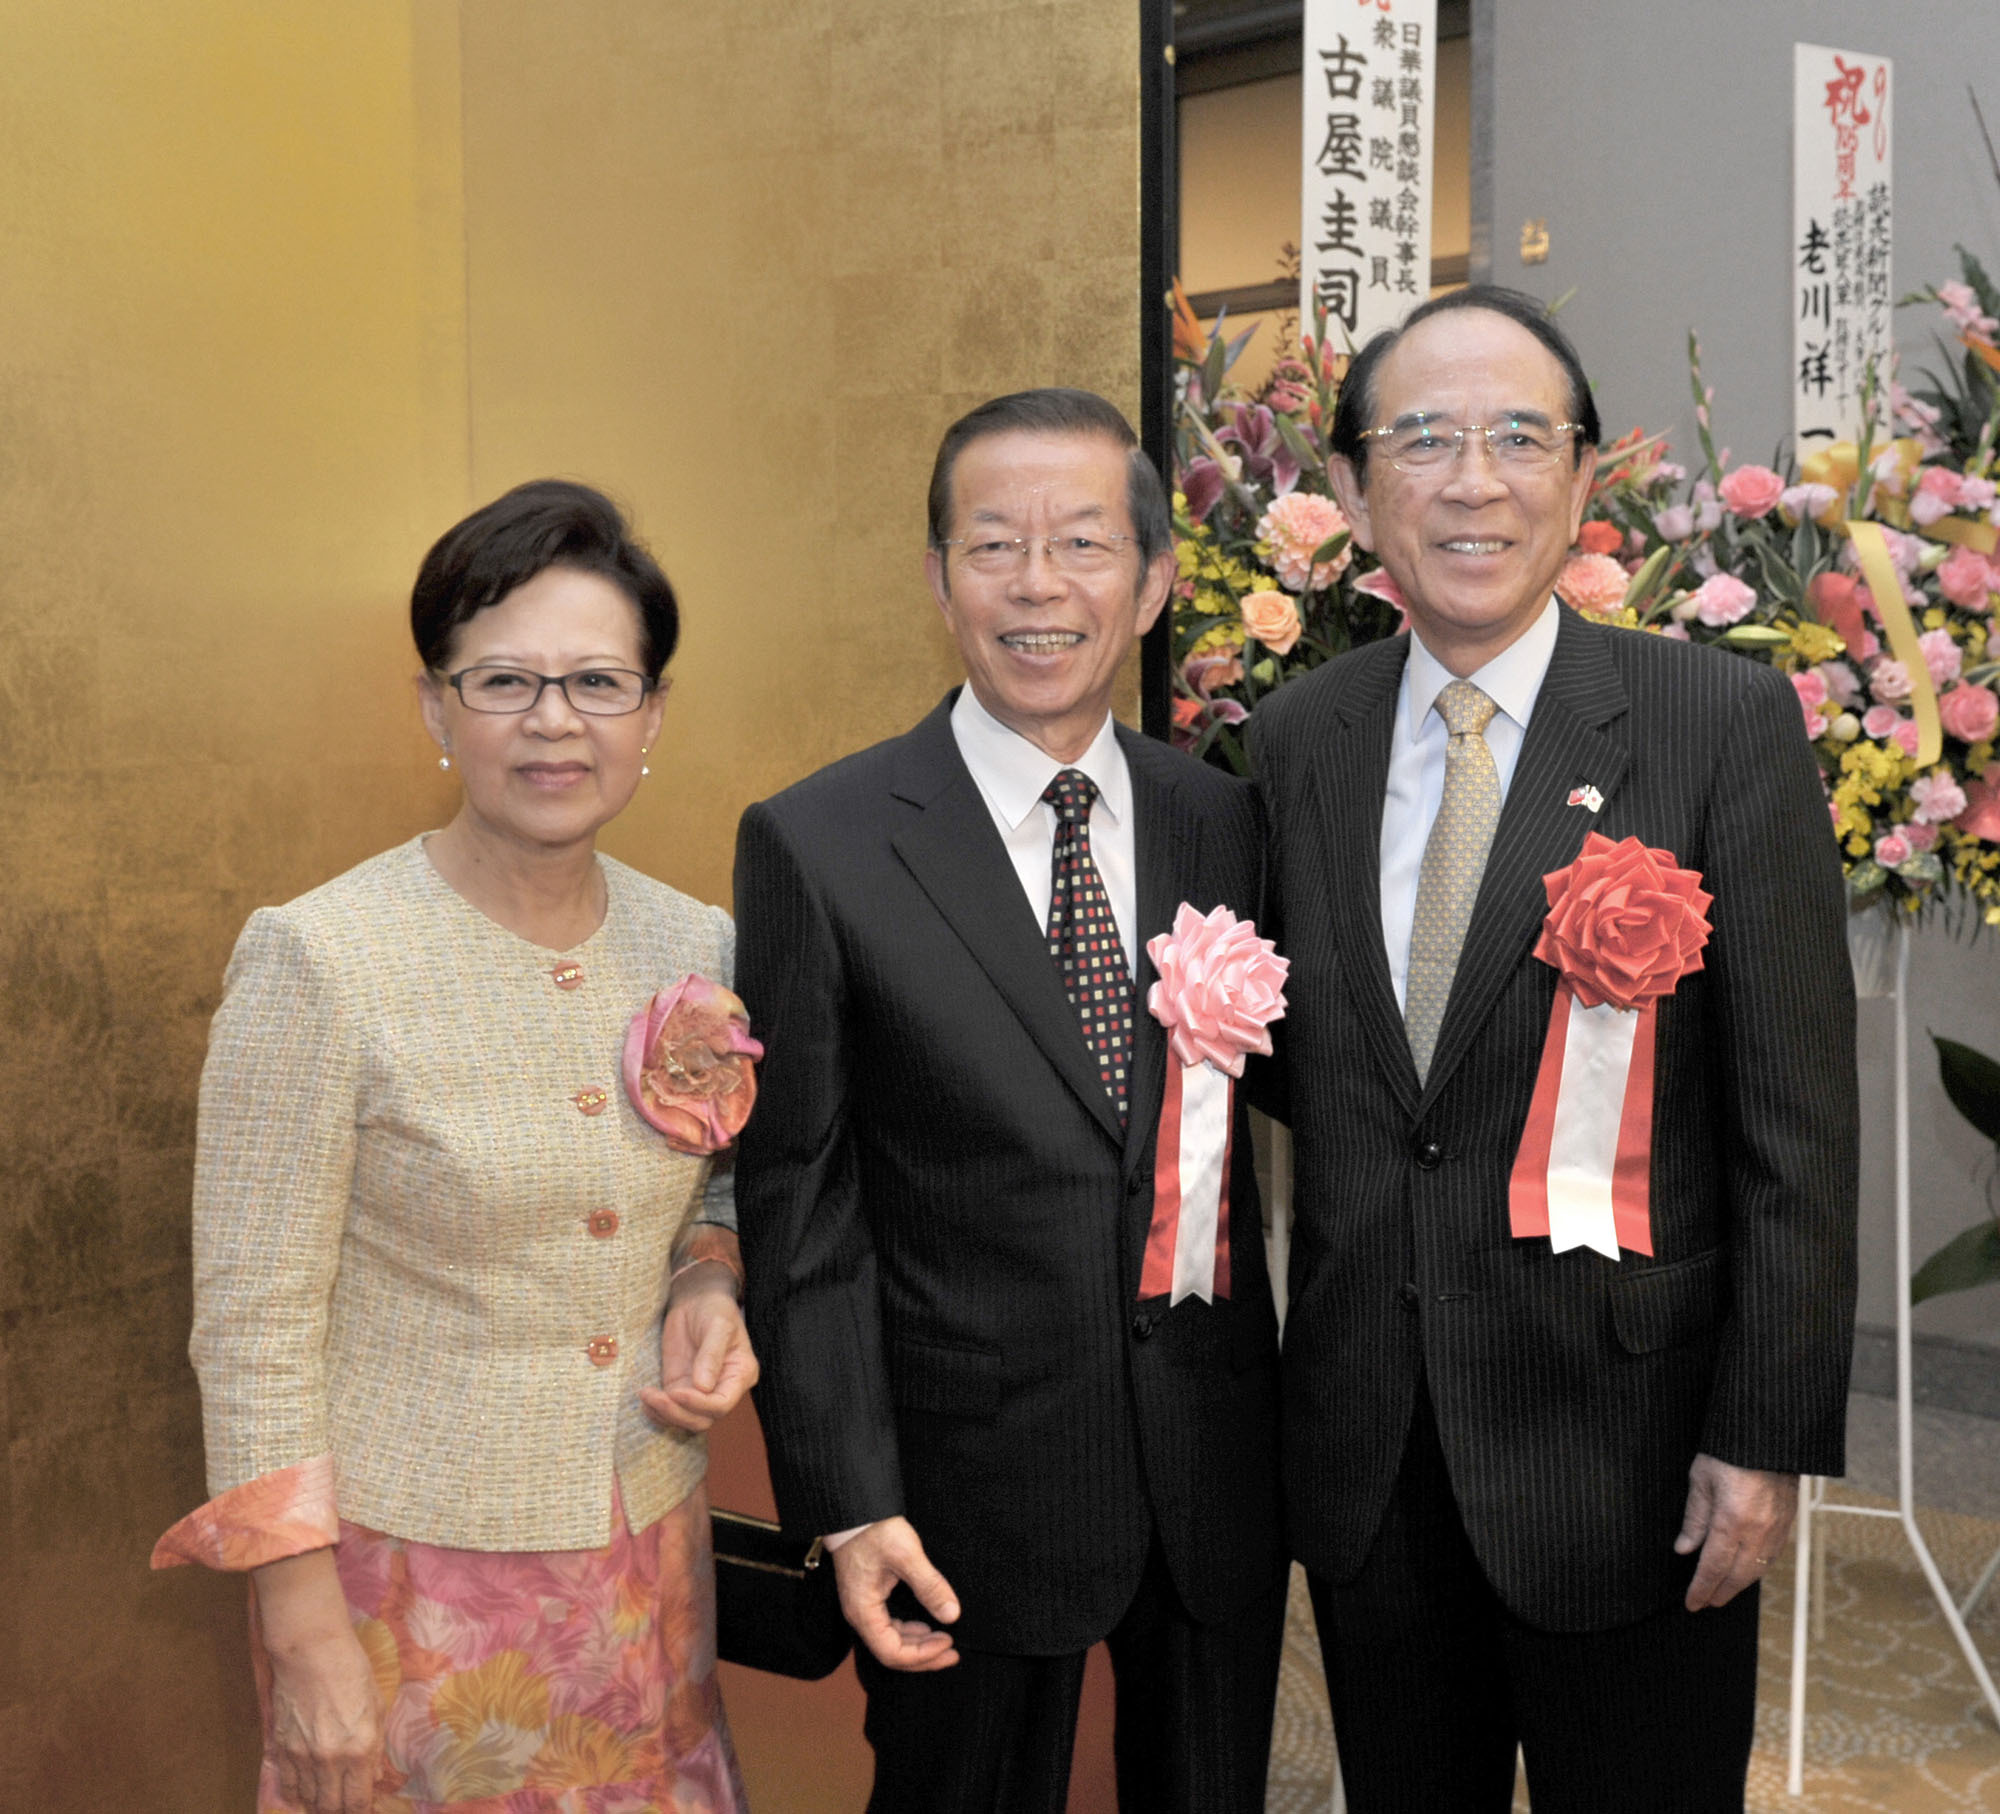 """Representative of the Taipei Economic and cultural Representative Office in Japan Frank C.T. Hsieh (center) and his wife Fang-Chih Hsieh Yu welcome Interchange Association, Japan Chairman Mitsuo Ohashi during a reception to celebrate the 105th anniversary of the """"Double Ten"""" National Day, when the Xinhai revolution that overthrew the Qing dynasty started on Oct. 10, 1911, at the Palace Hotel Tokyo on Oct. 6. 